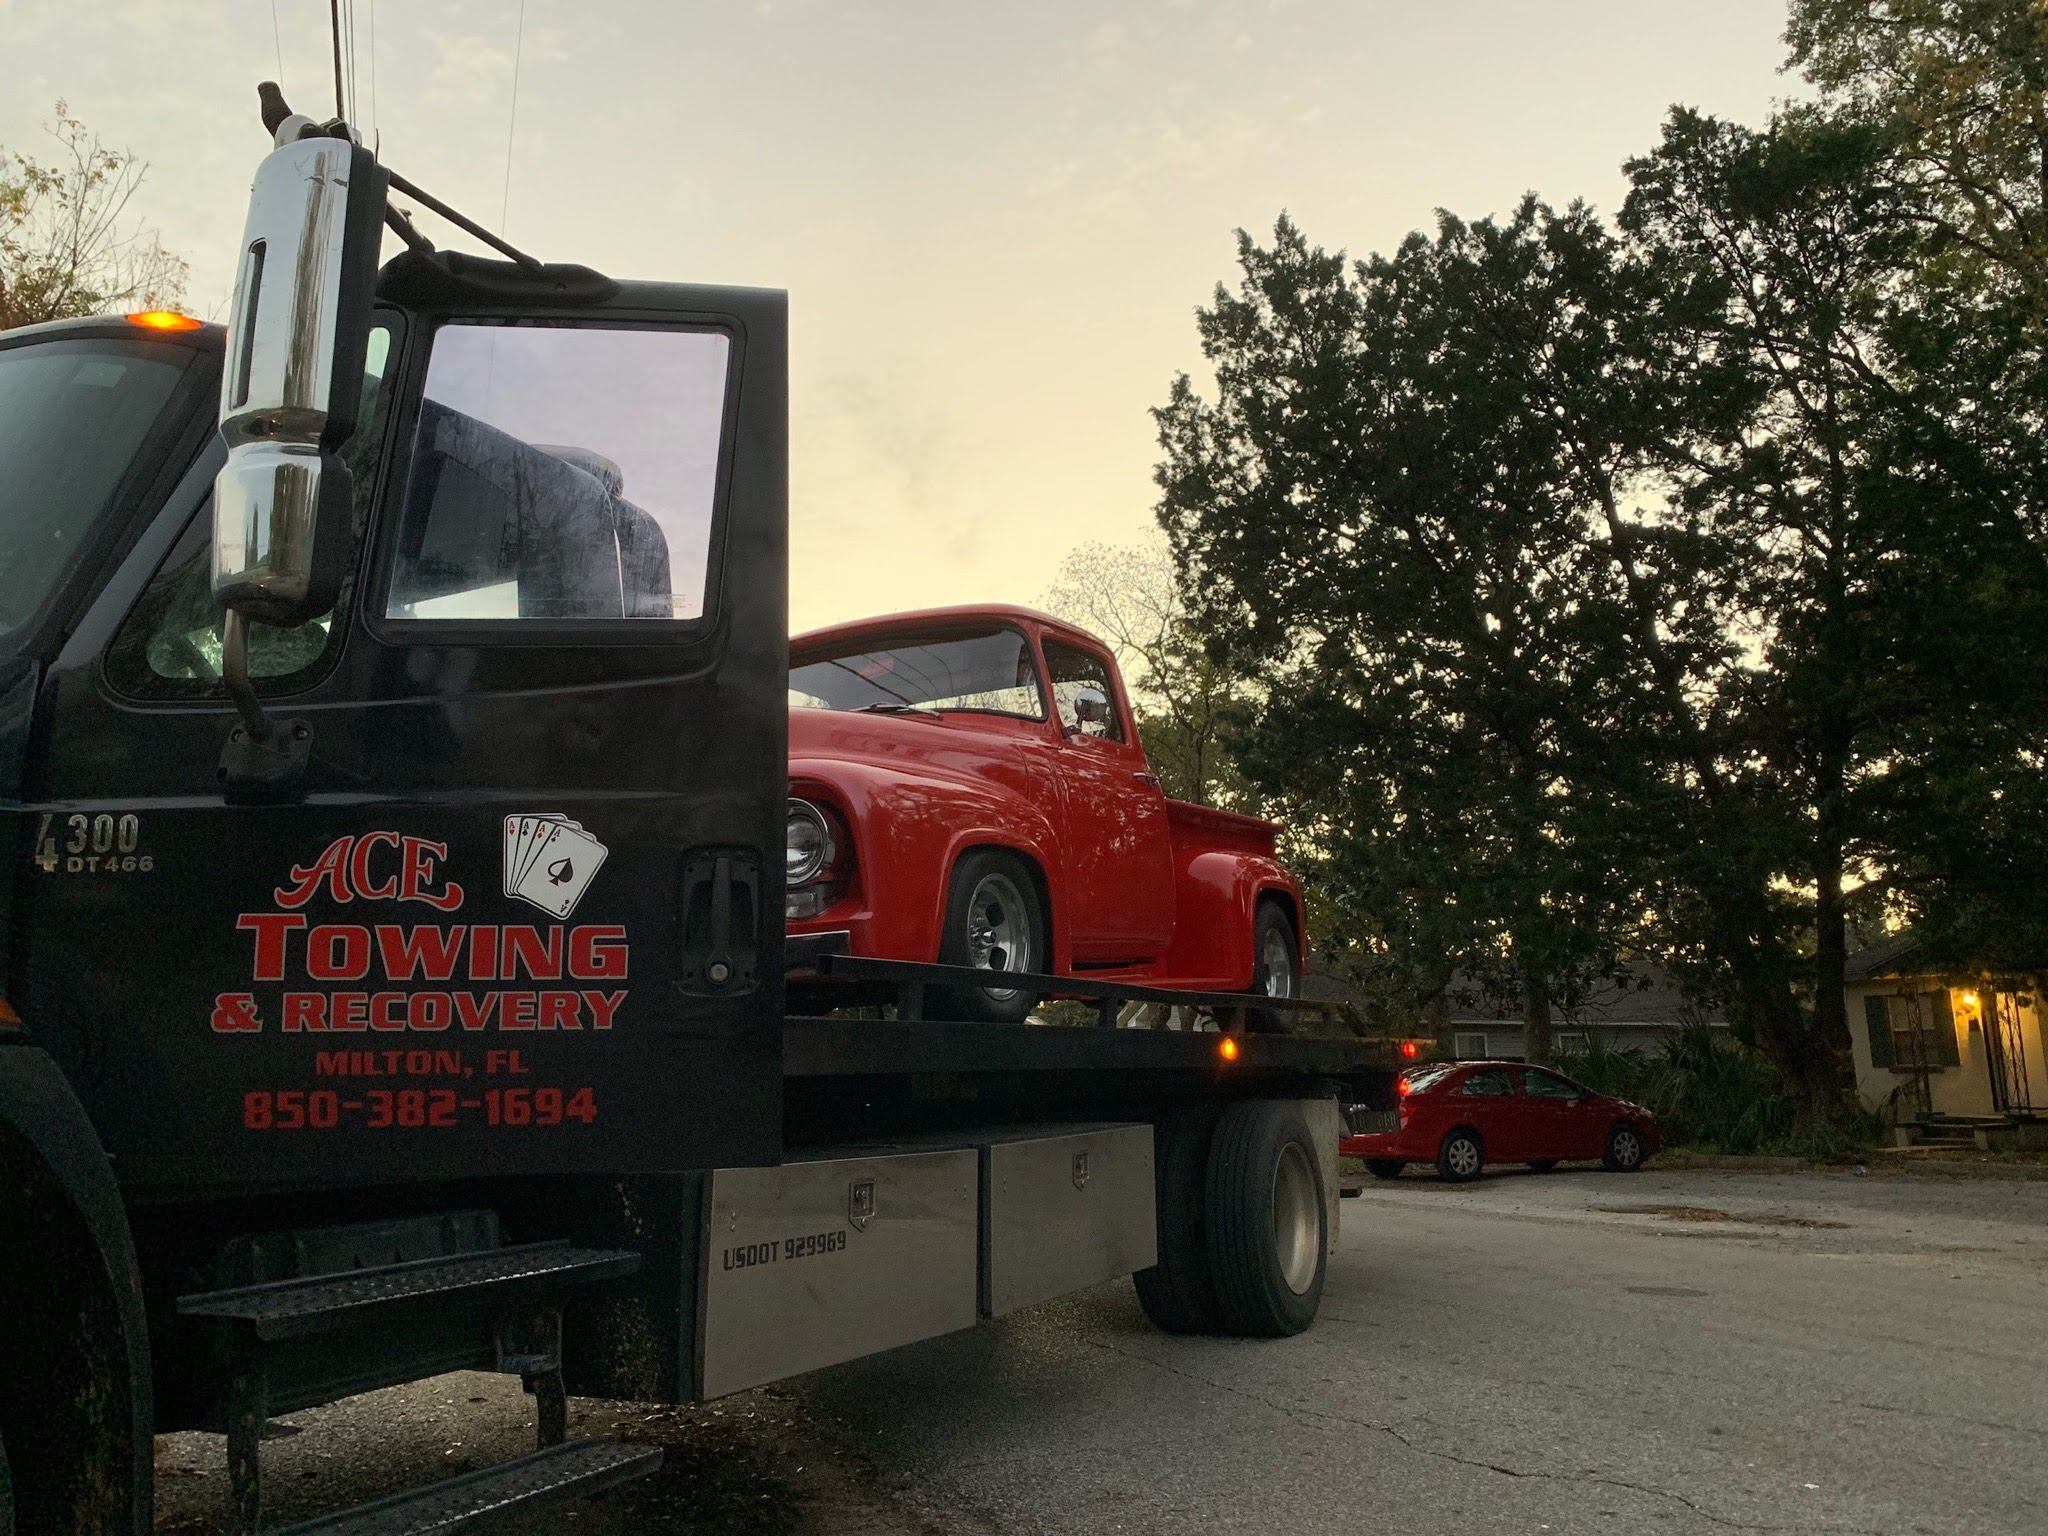 Ace Towing & Recovery image 0